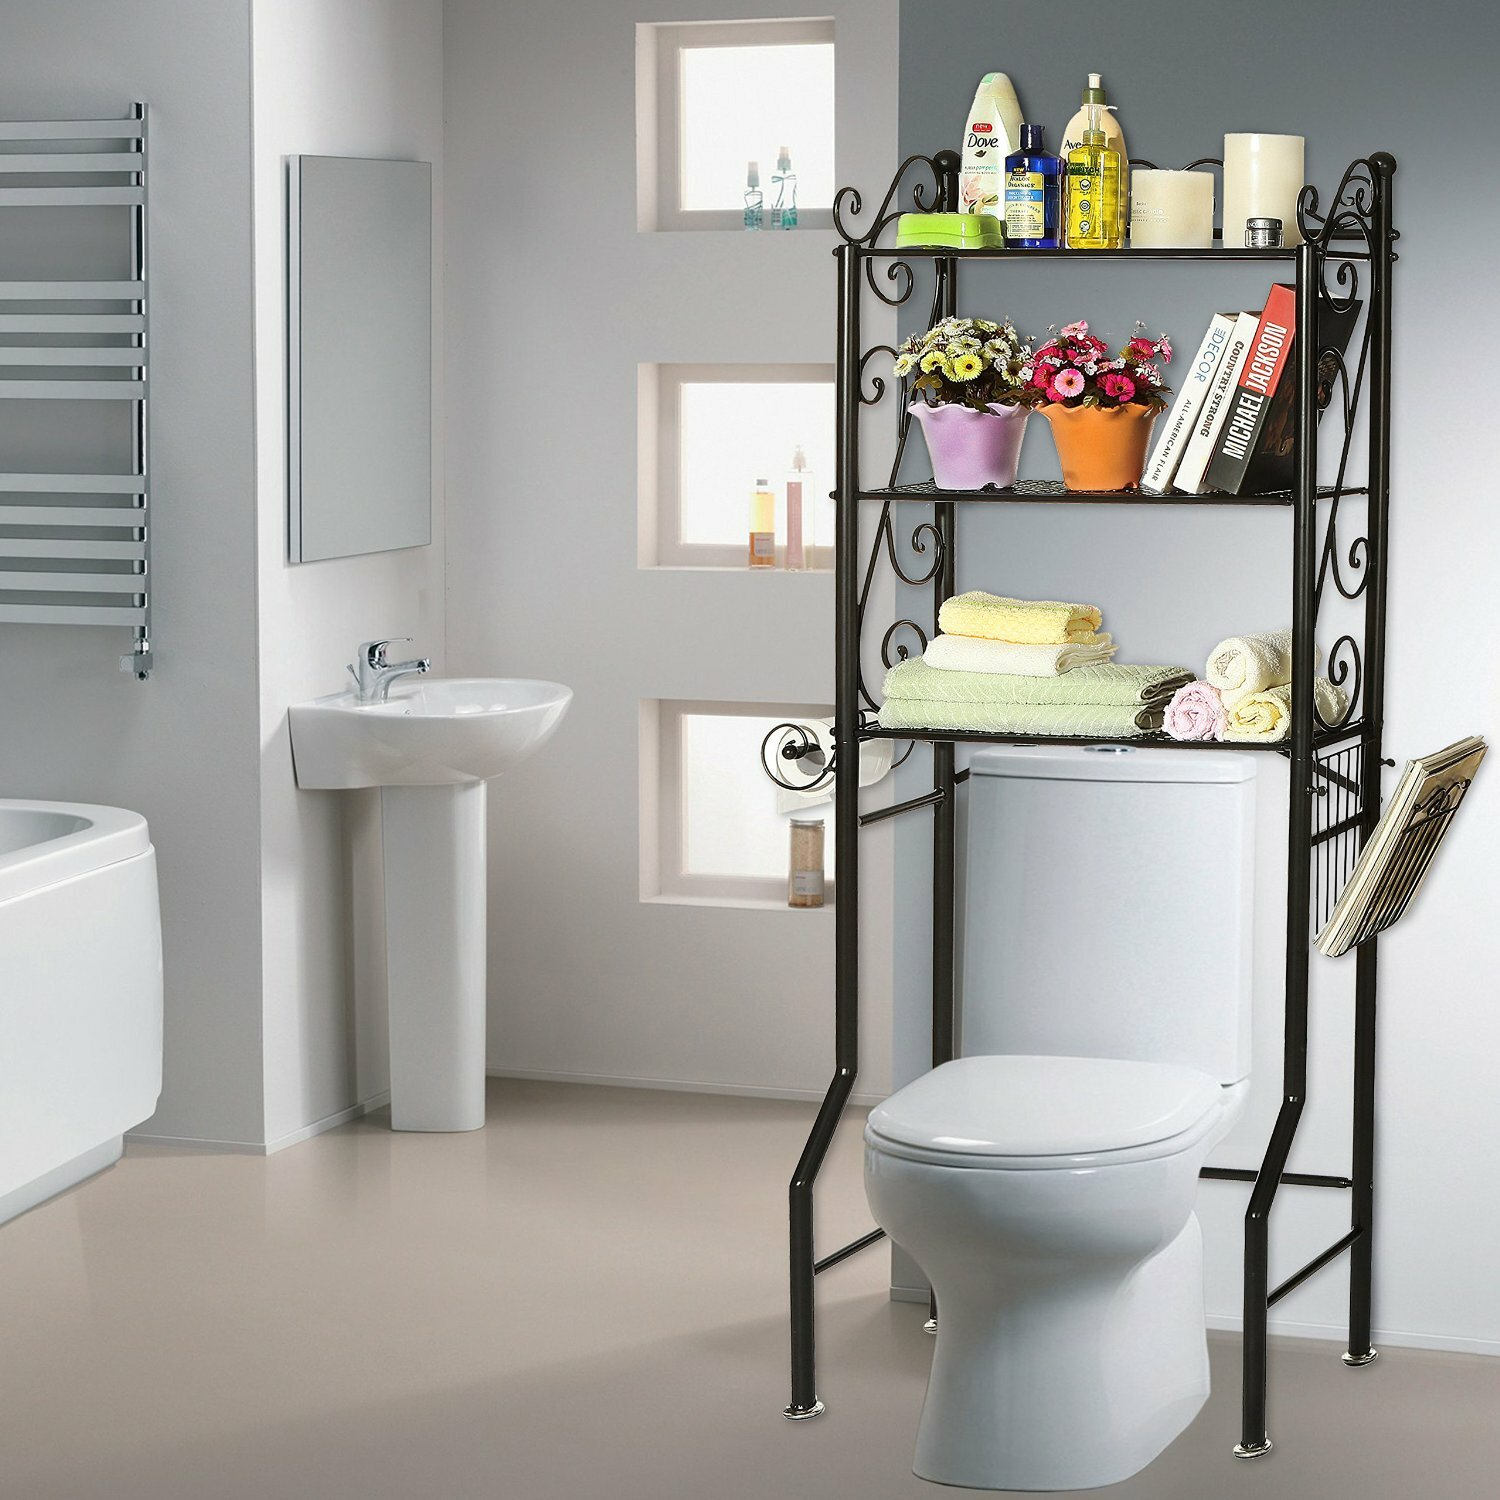 bathroom toilet etagere oak bathroom space saver over toilet over the toilet etagere ikea. Black Bedroom Furniture Sets. Home Design Ideas